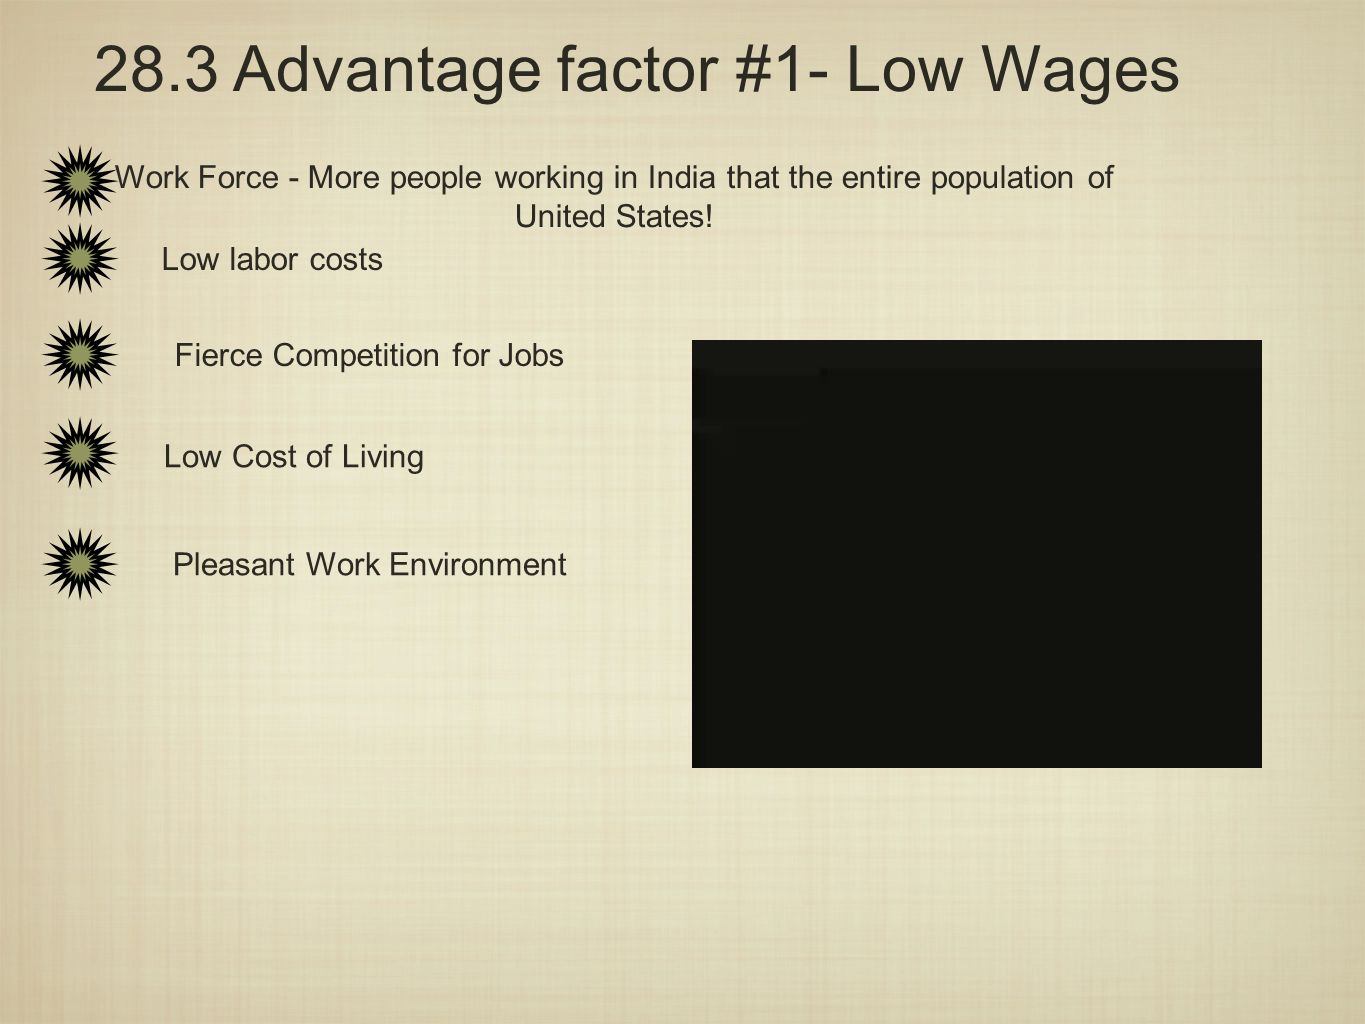 28.3 Advantage factor #1- Low Wages